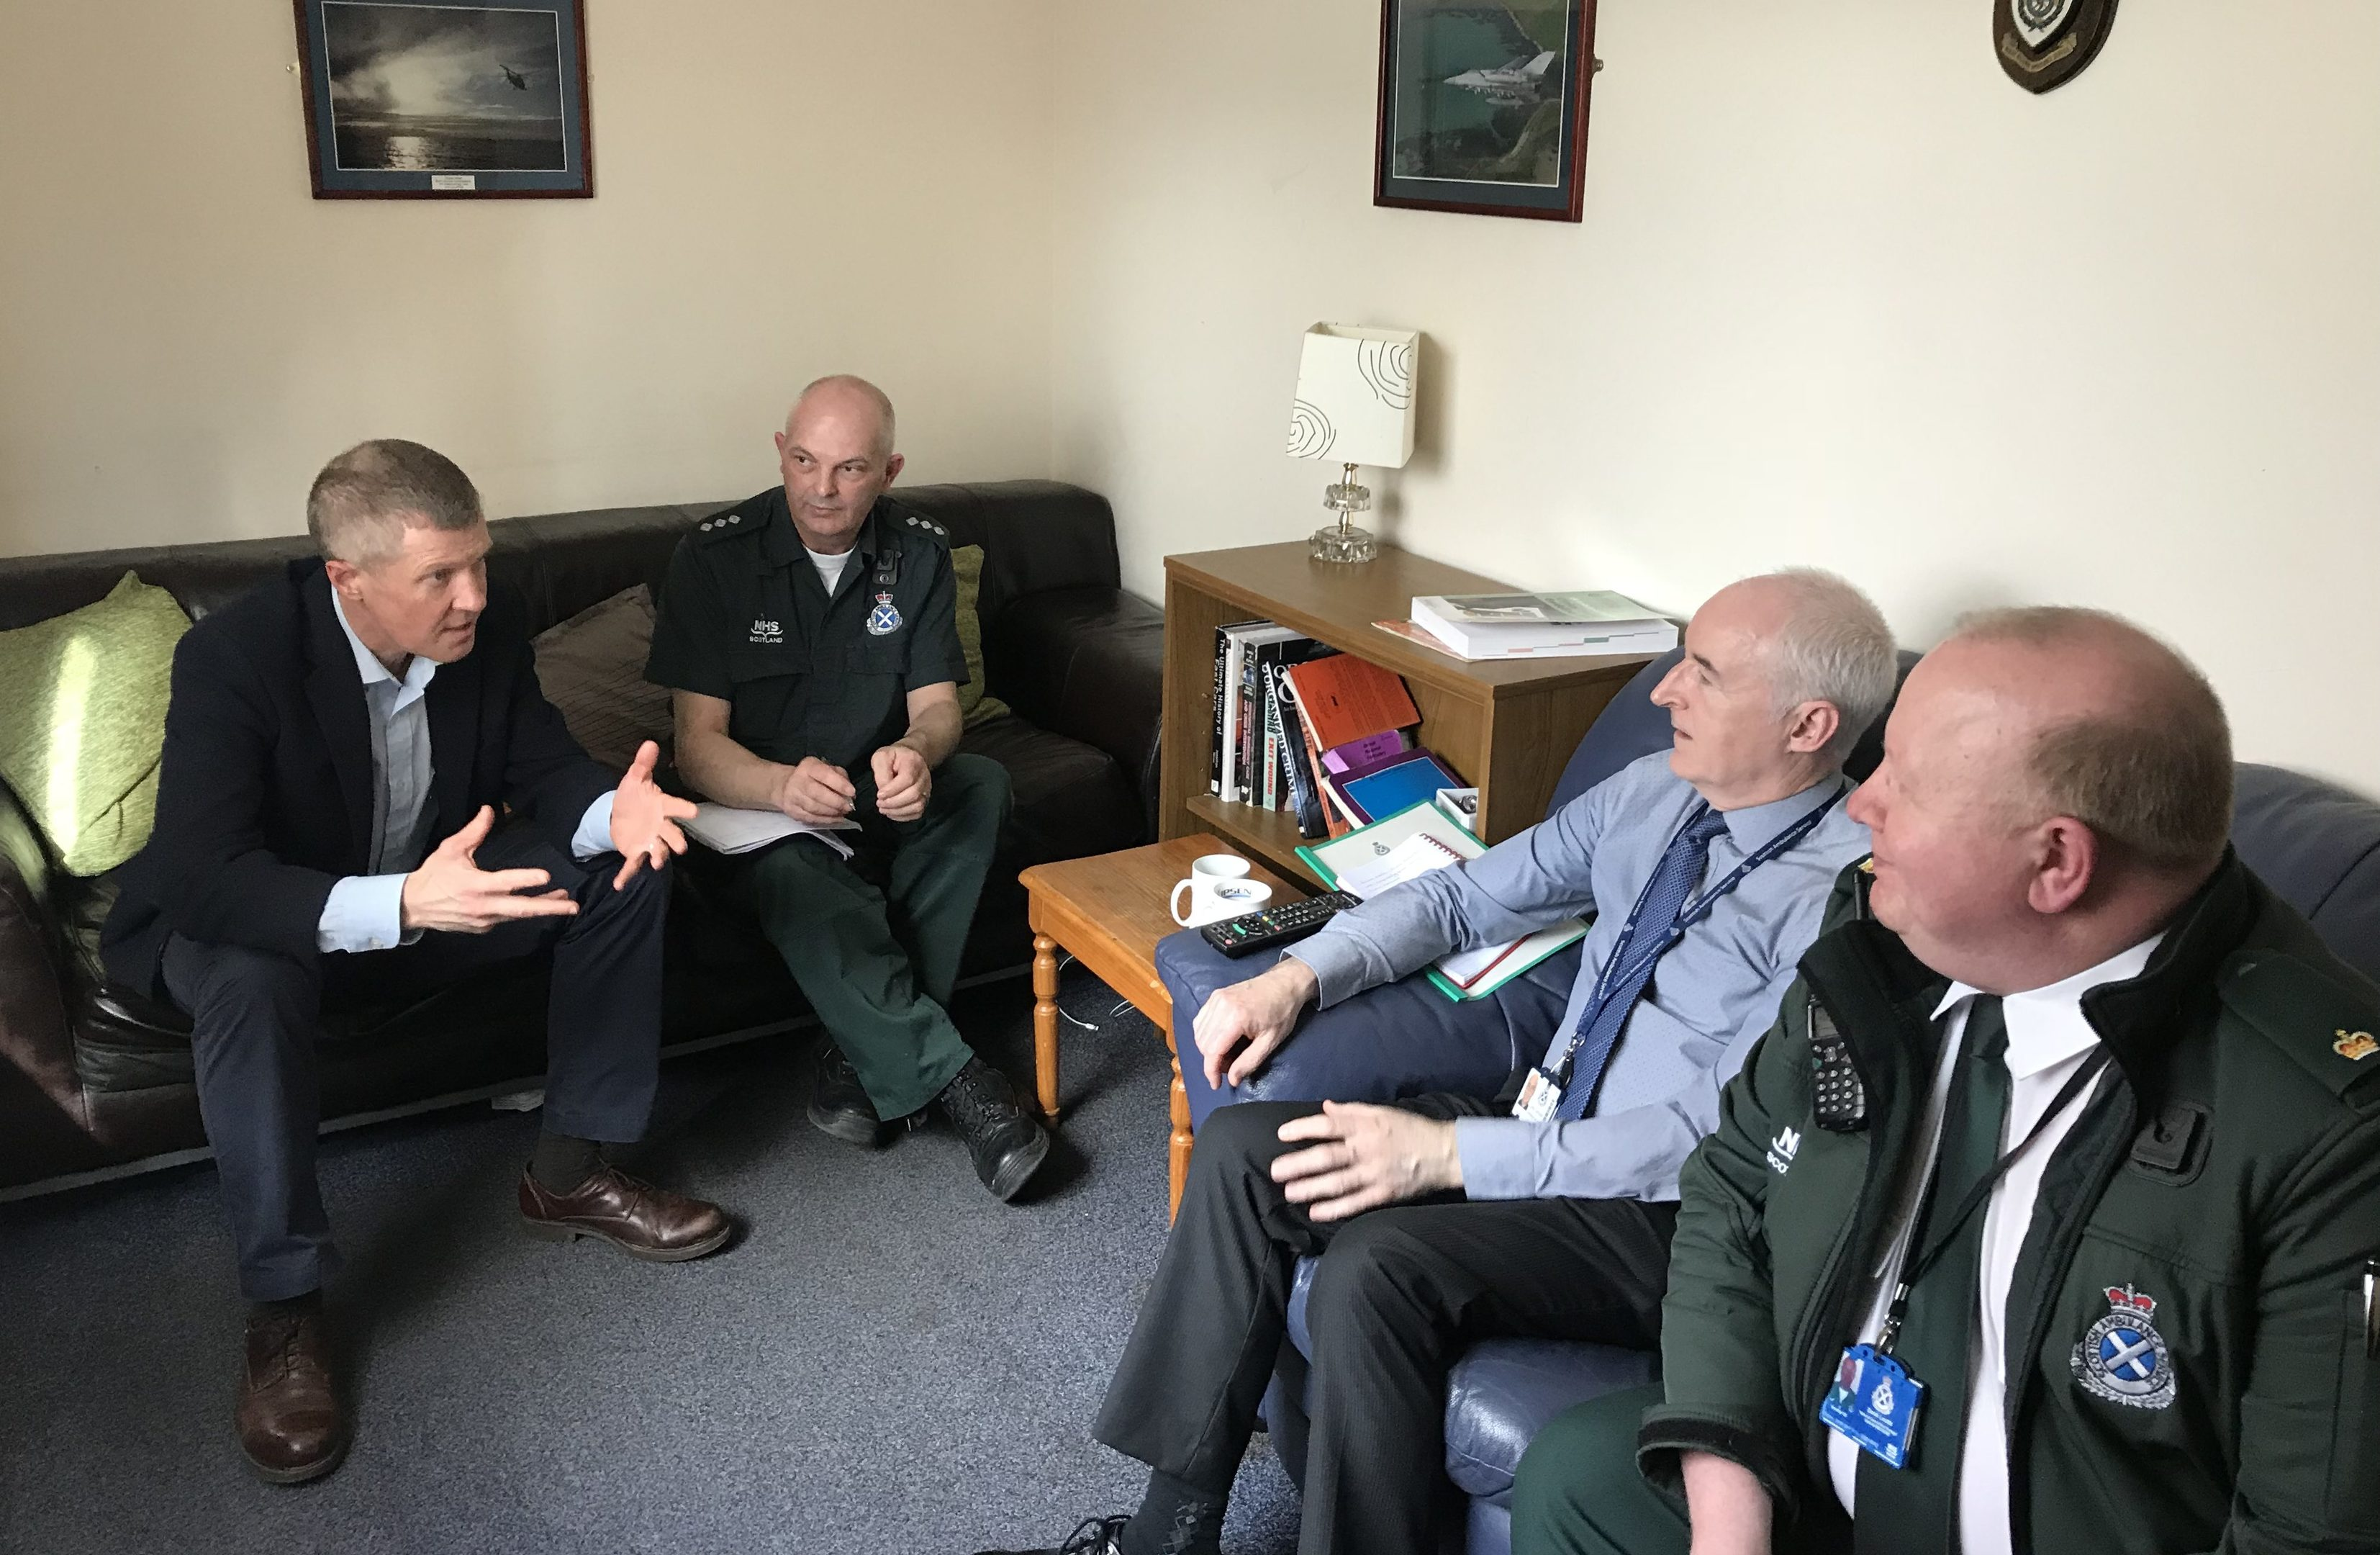 Mr Rennie with representatives of the service  including Derek Louttit, national clinical risk manager, and Lewis Campbell, regional director for the Scottish Ambulance Service east division.